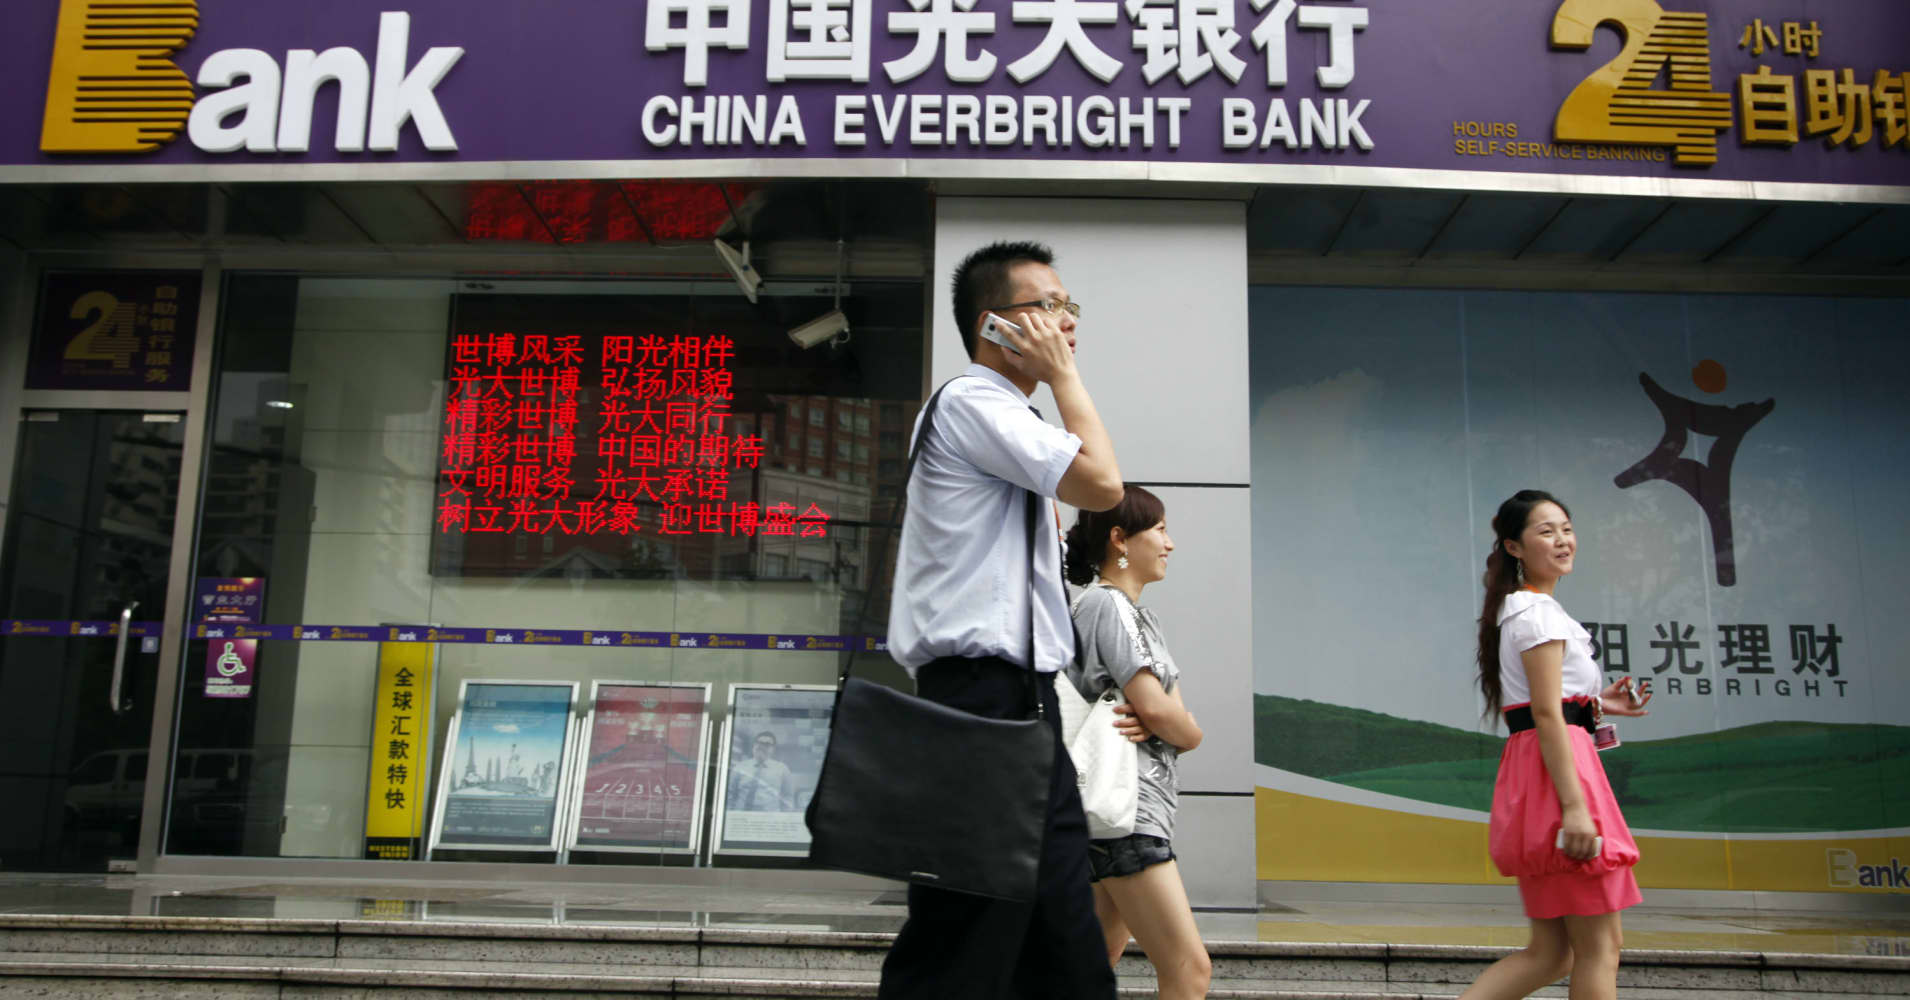 Chinese Tech Companies are Growing More Powerful, and Banks are Turning to Them for Help